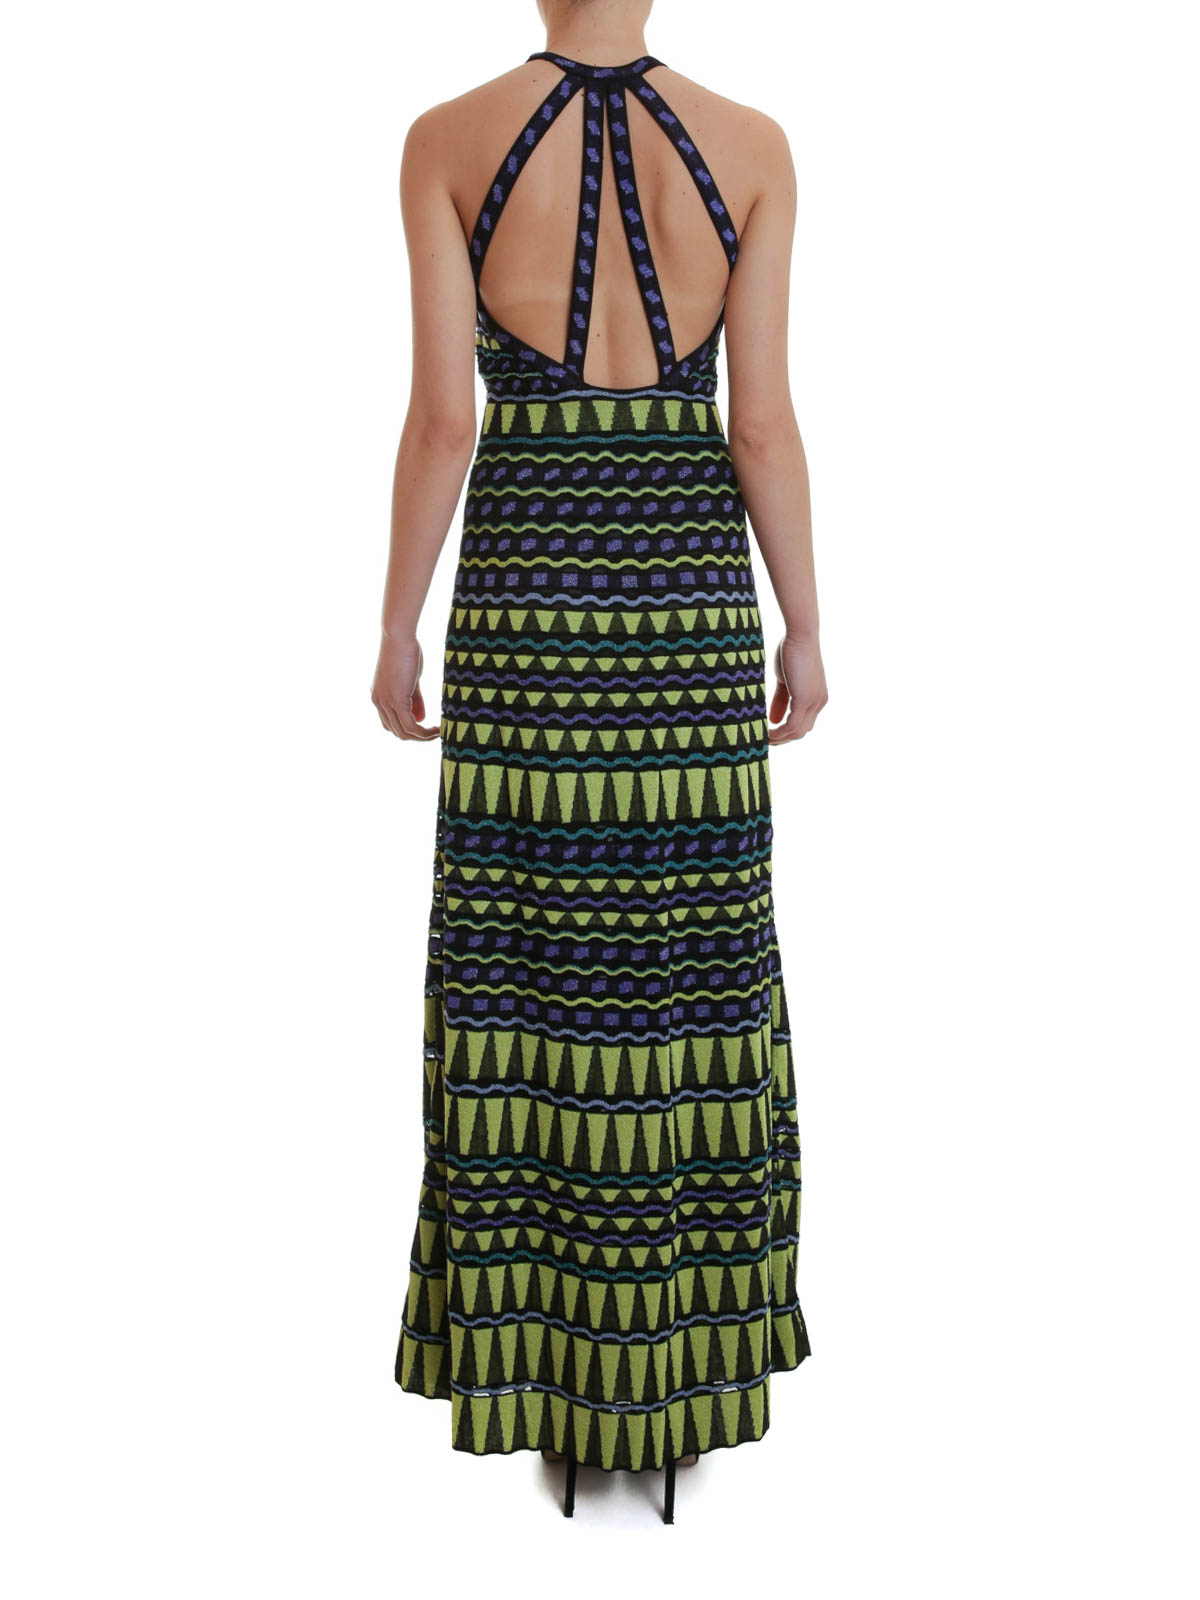 Shop women's maxi dresses at trueufile8d.tk Discover a stylish selection of the latest brand name and designer fashions all at a great value. Skip to Navigation Skip to Main Content. Shop Shop Find a Store Find a Store Find a Store. my account. my bag keyword(s) new arrivals new arrivals.